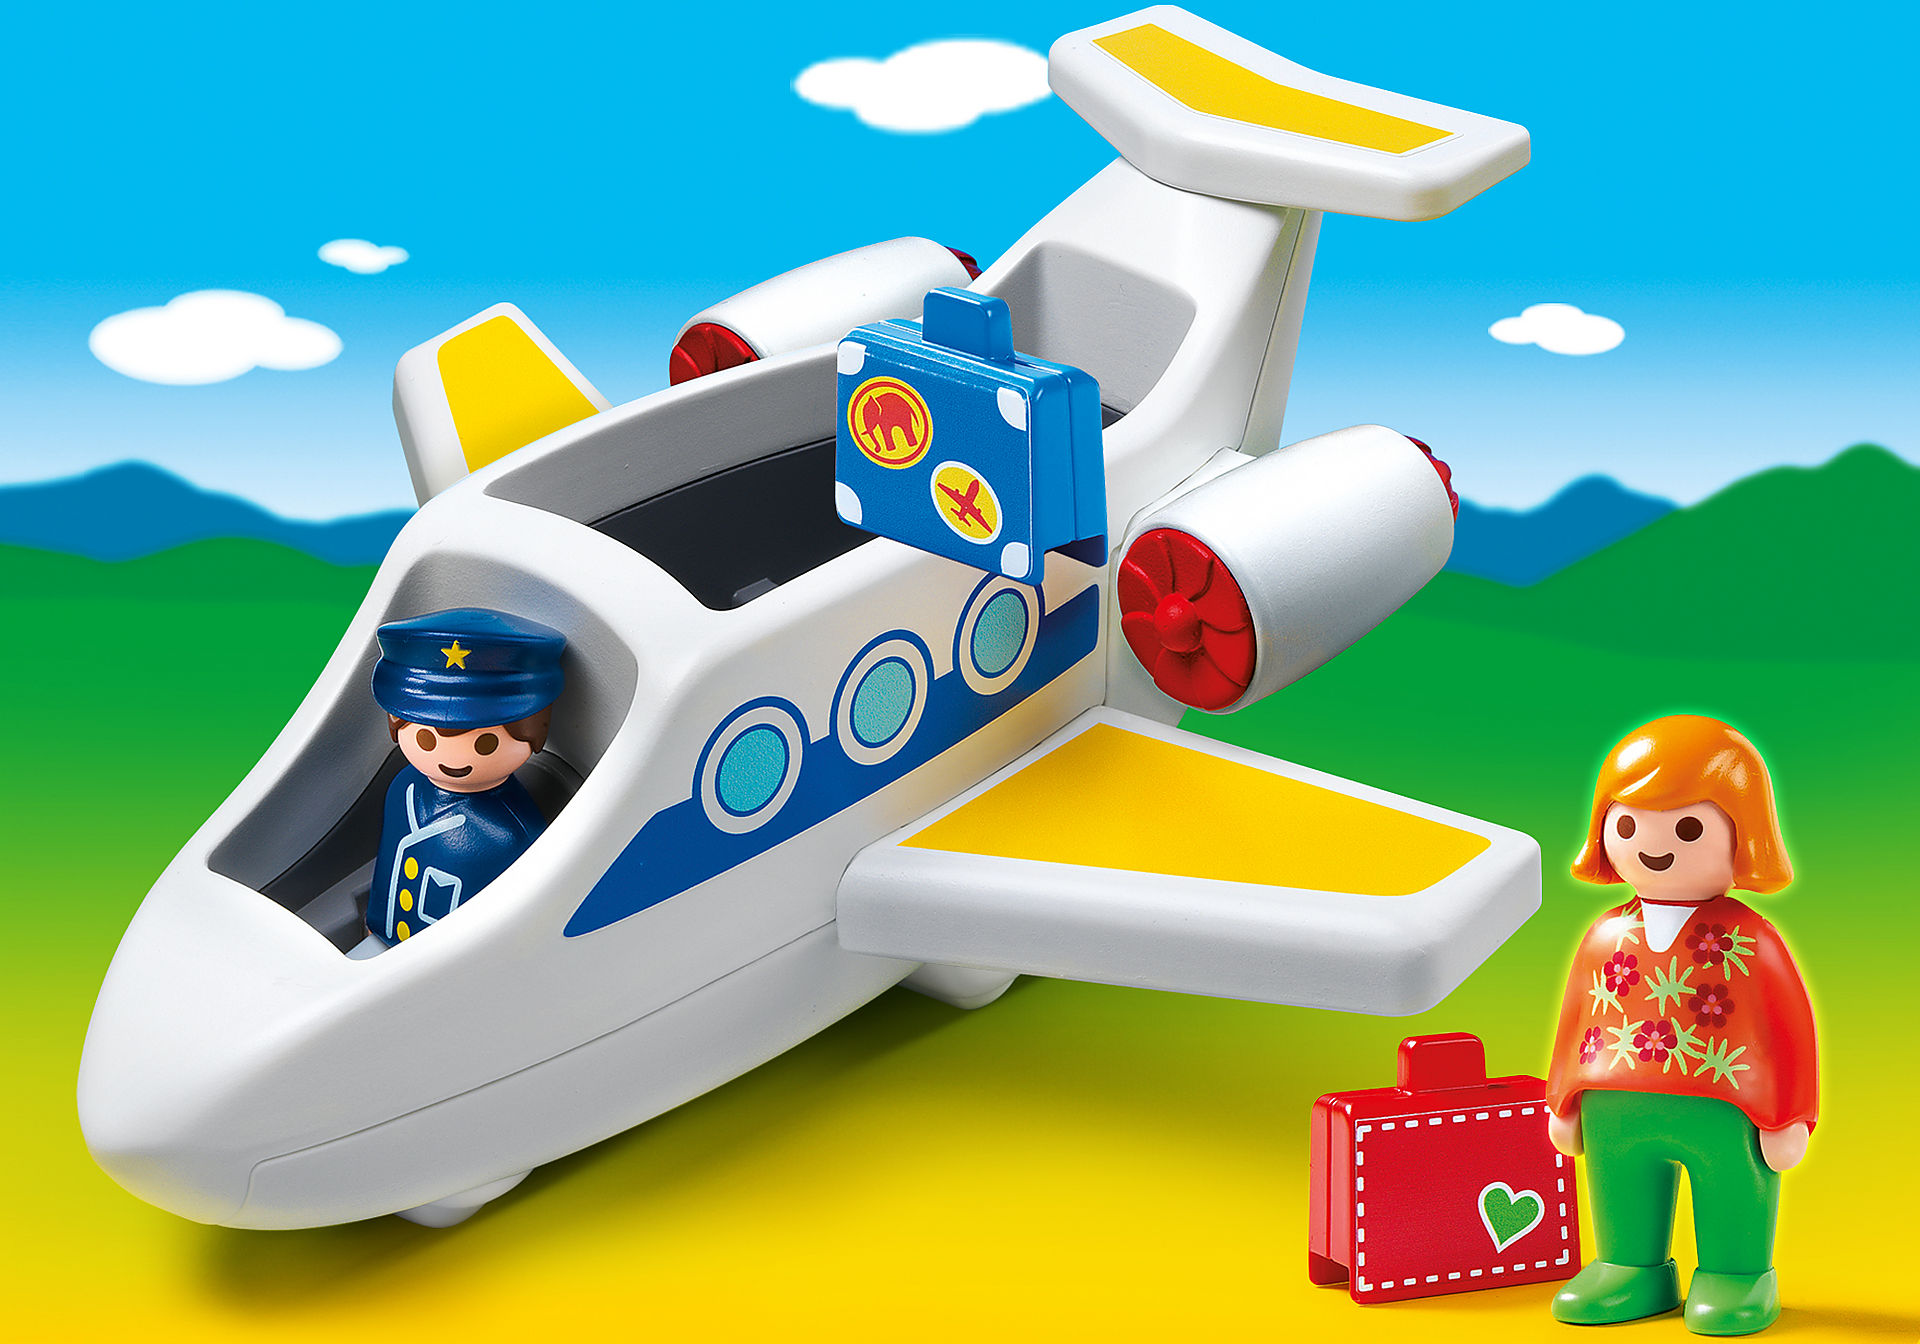 http://media.playmobil.com/i/playmobil/6780-A_product_detail/Passagierflugzeug